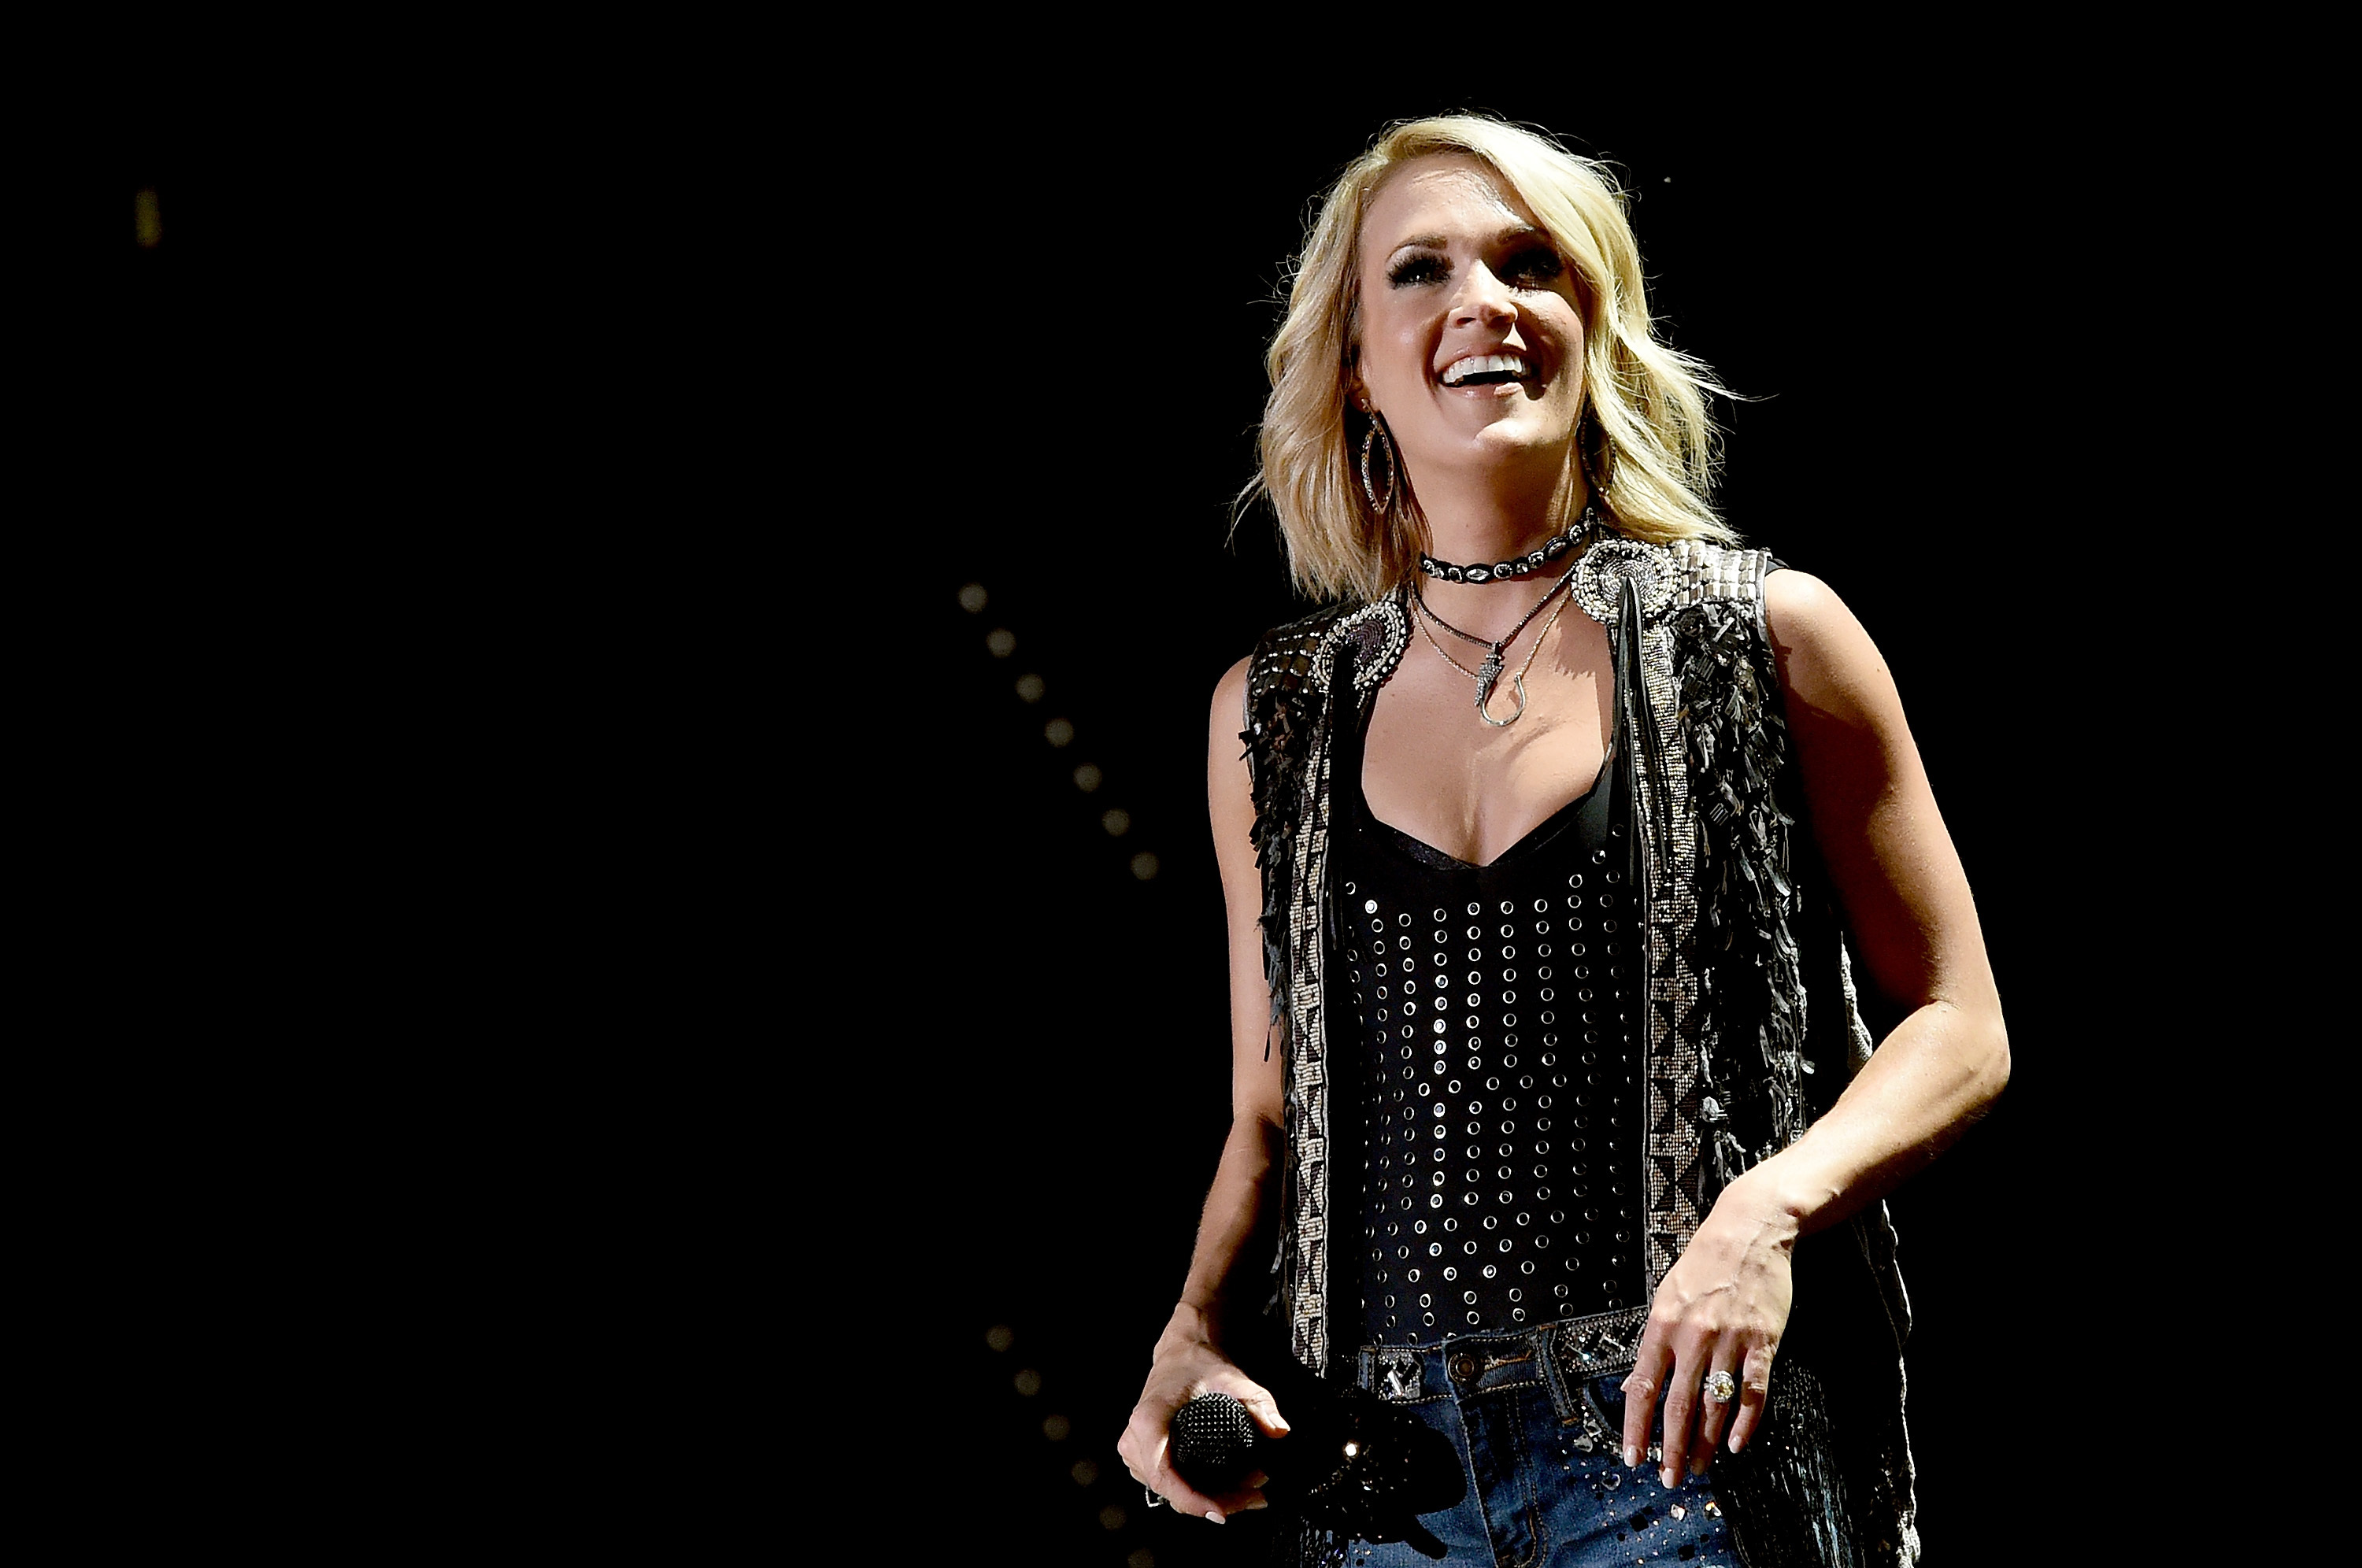 Carrie Underwood Hd Background